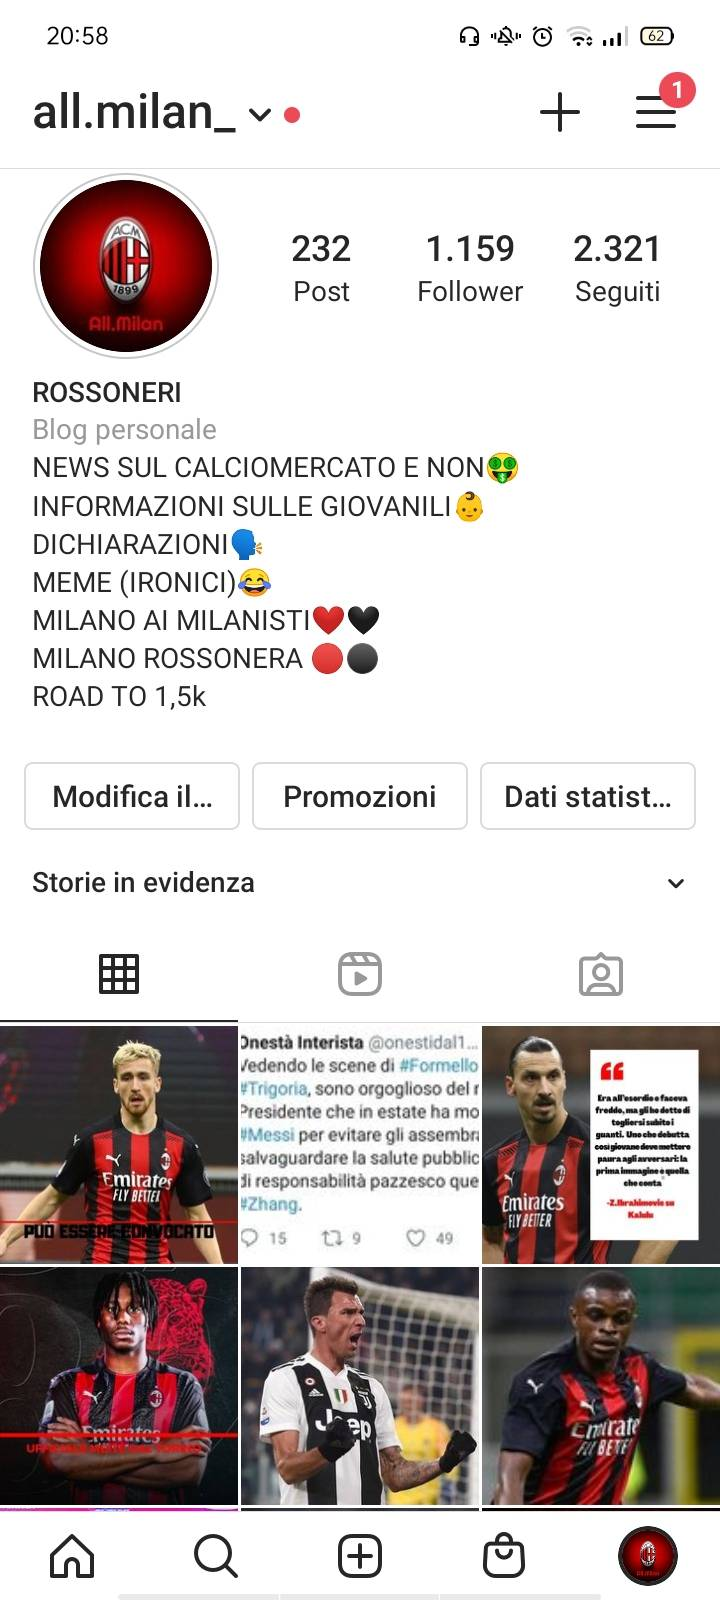 Ho 1100 follower-scambjo pubblicità con story e post